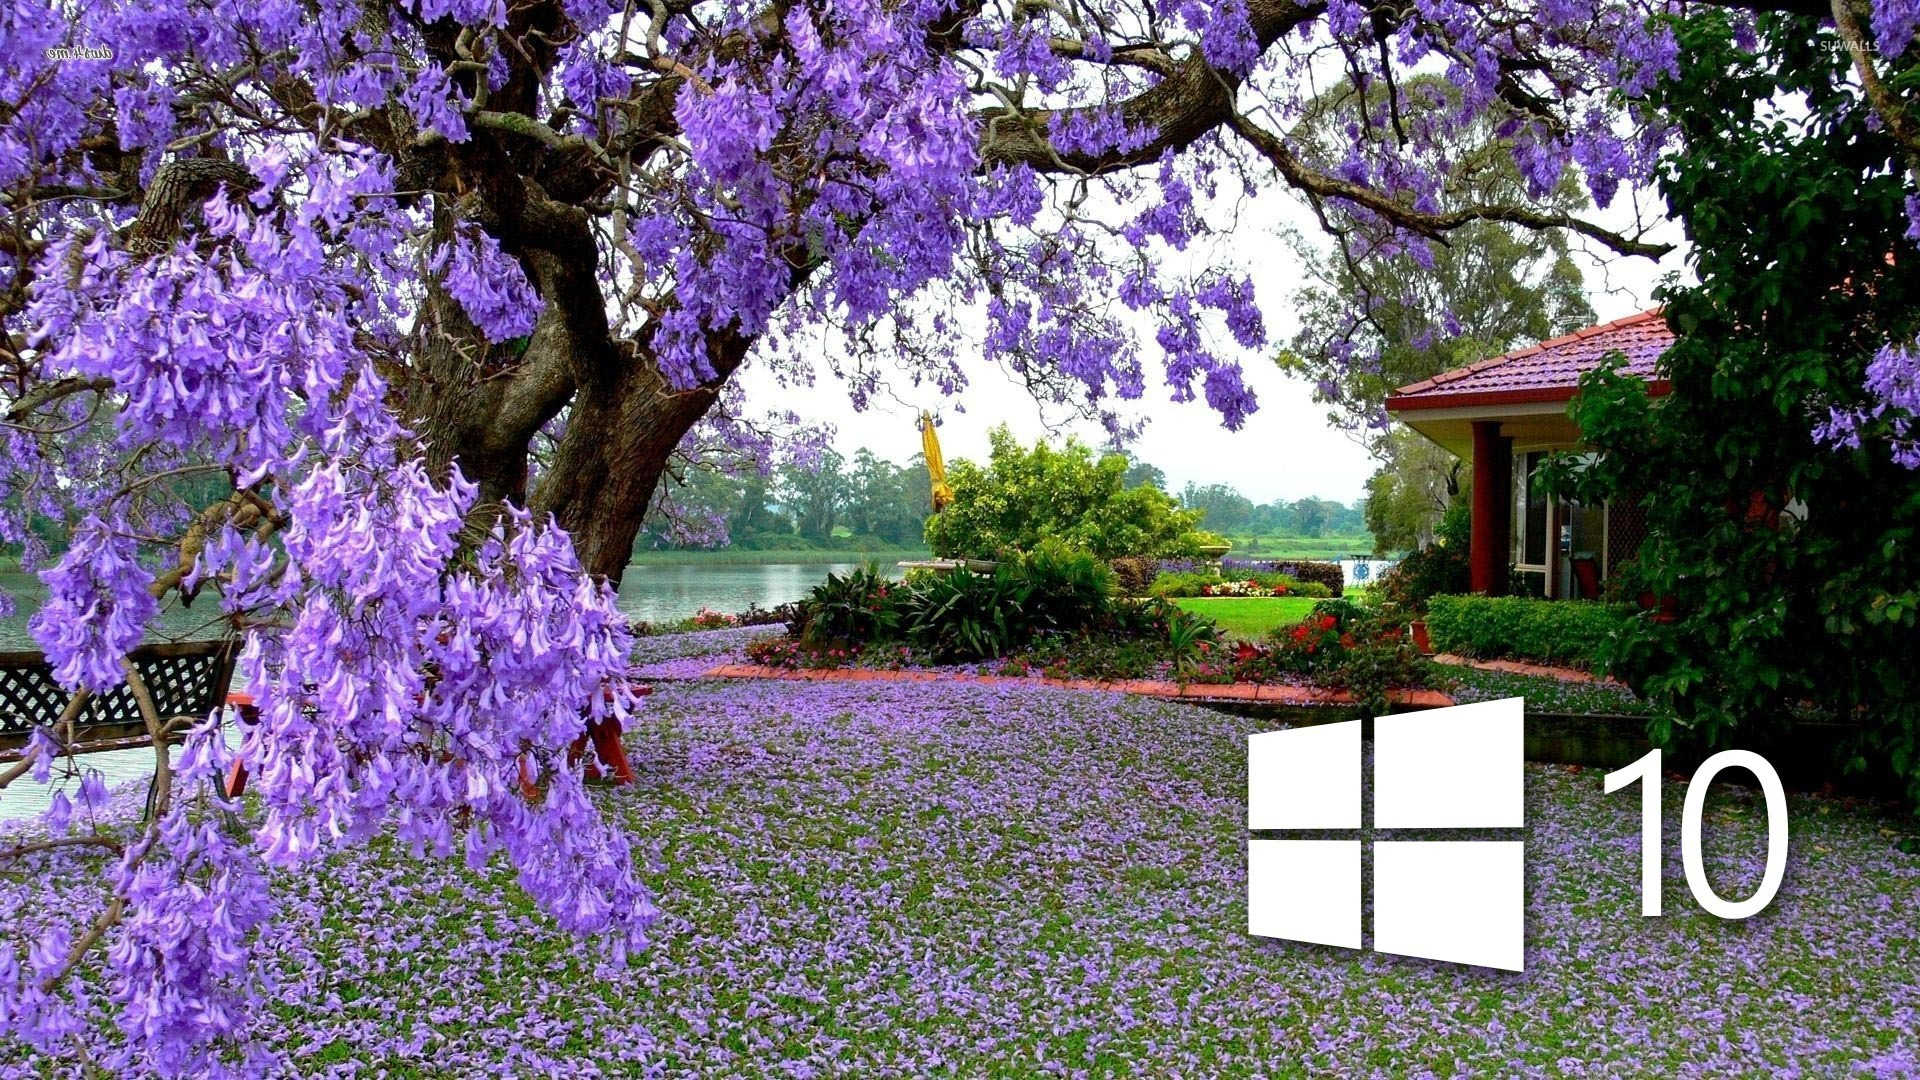 Windows 10 on the purple blossoms wallpaper   Computer wallpapers 1680x1050